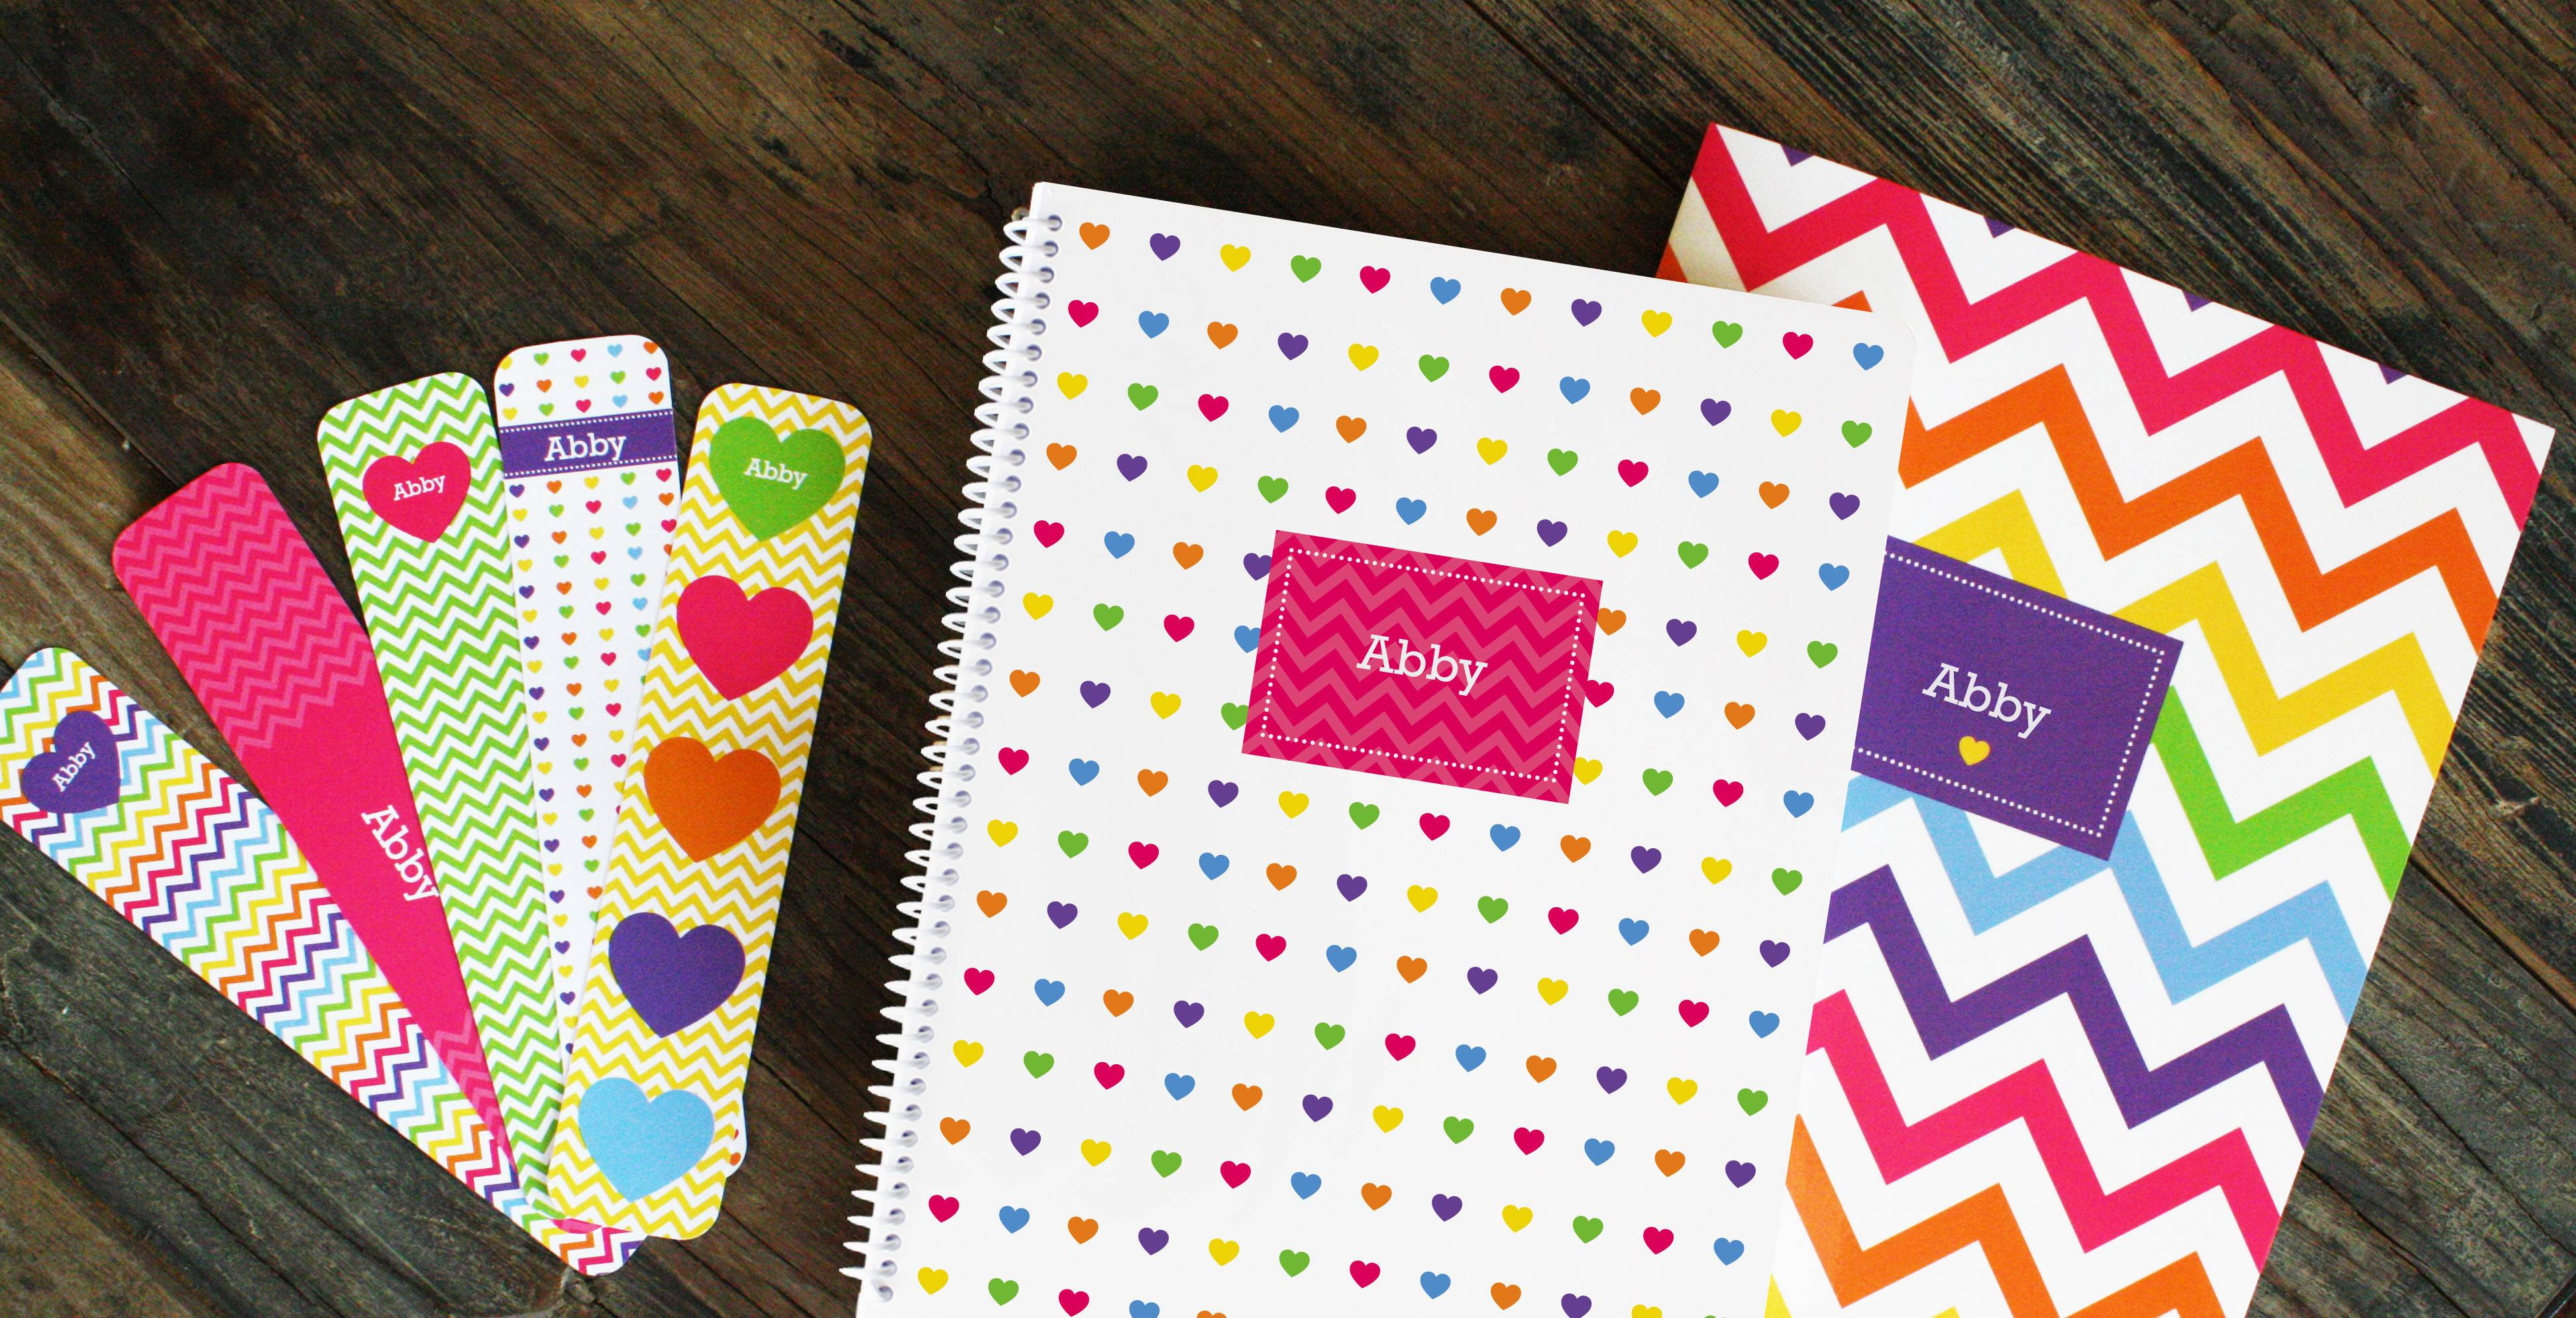 Geometrics and graphic prints put a preppy spin on notebooks that can be personalized with kids' names or initials.